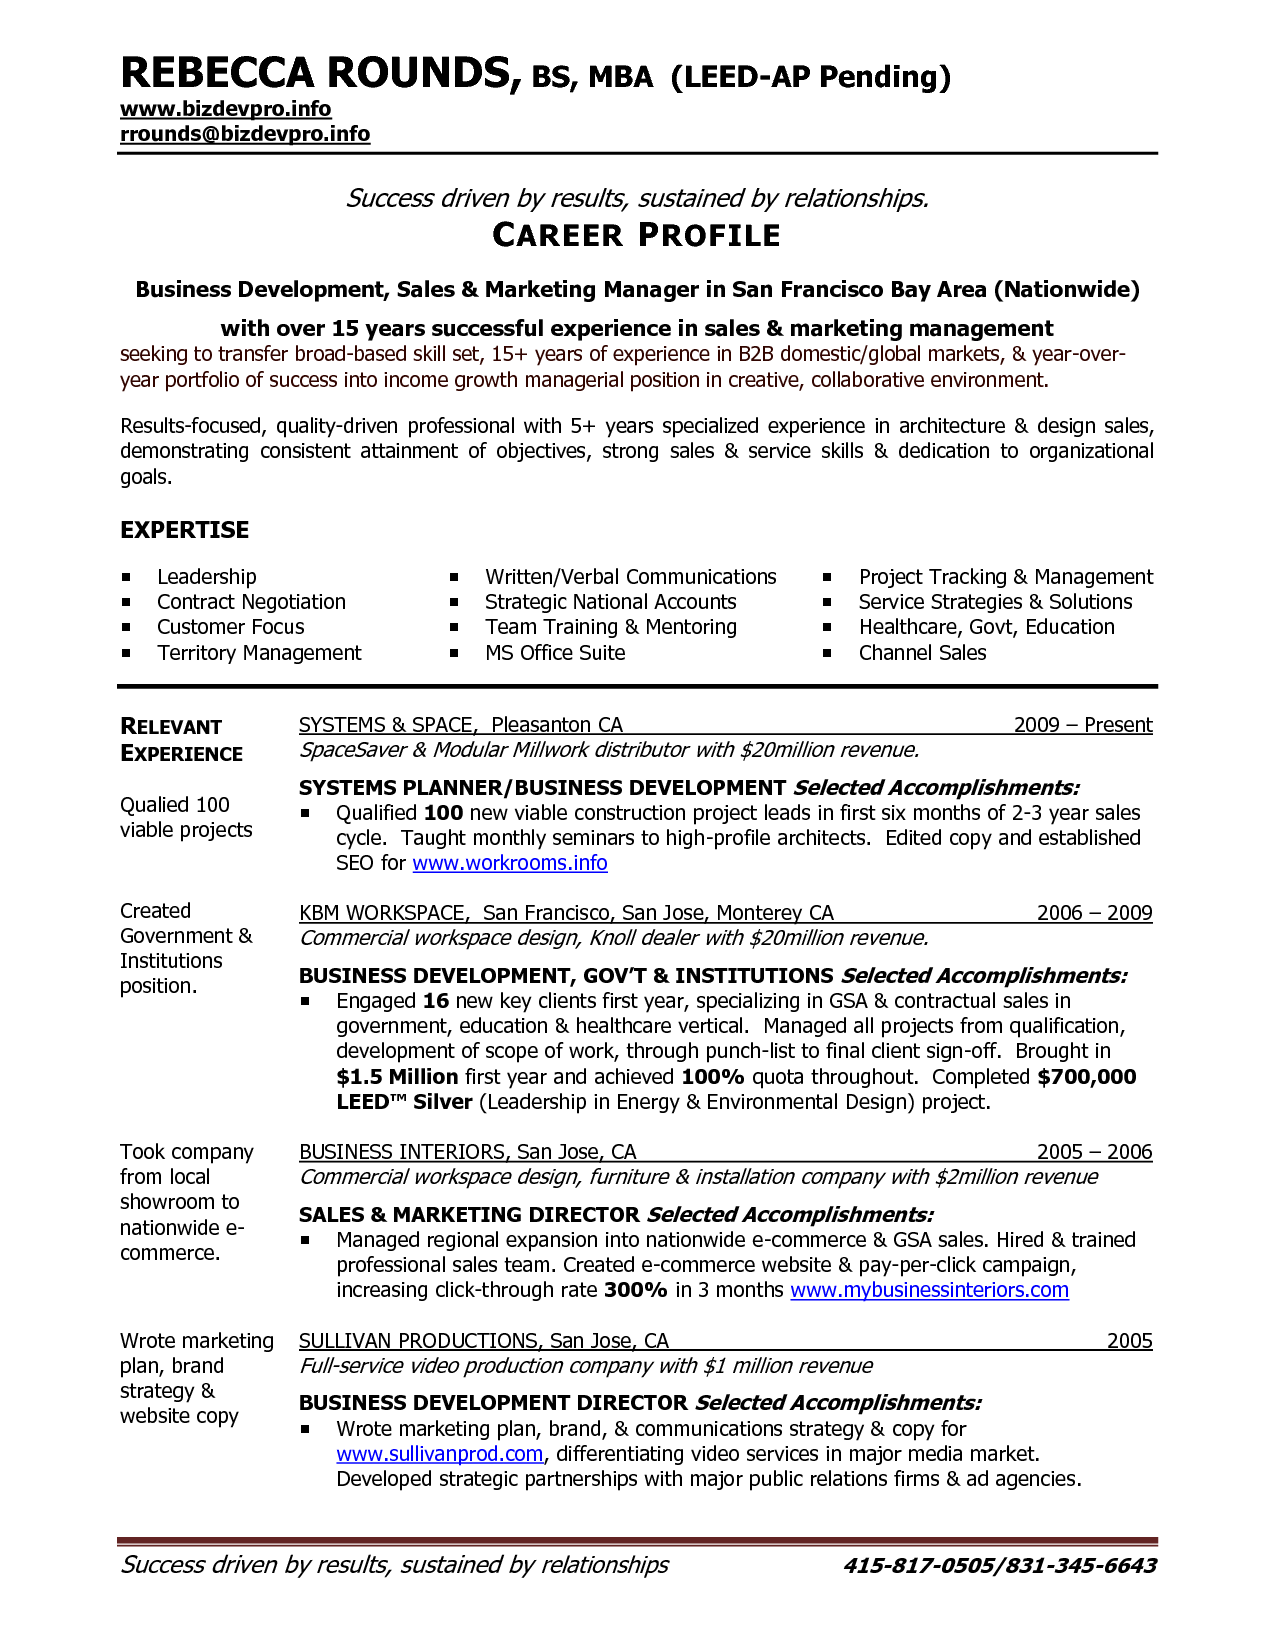 Business Development Manager Resume | Sample Resume Center ...